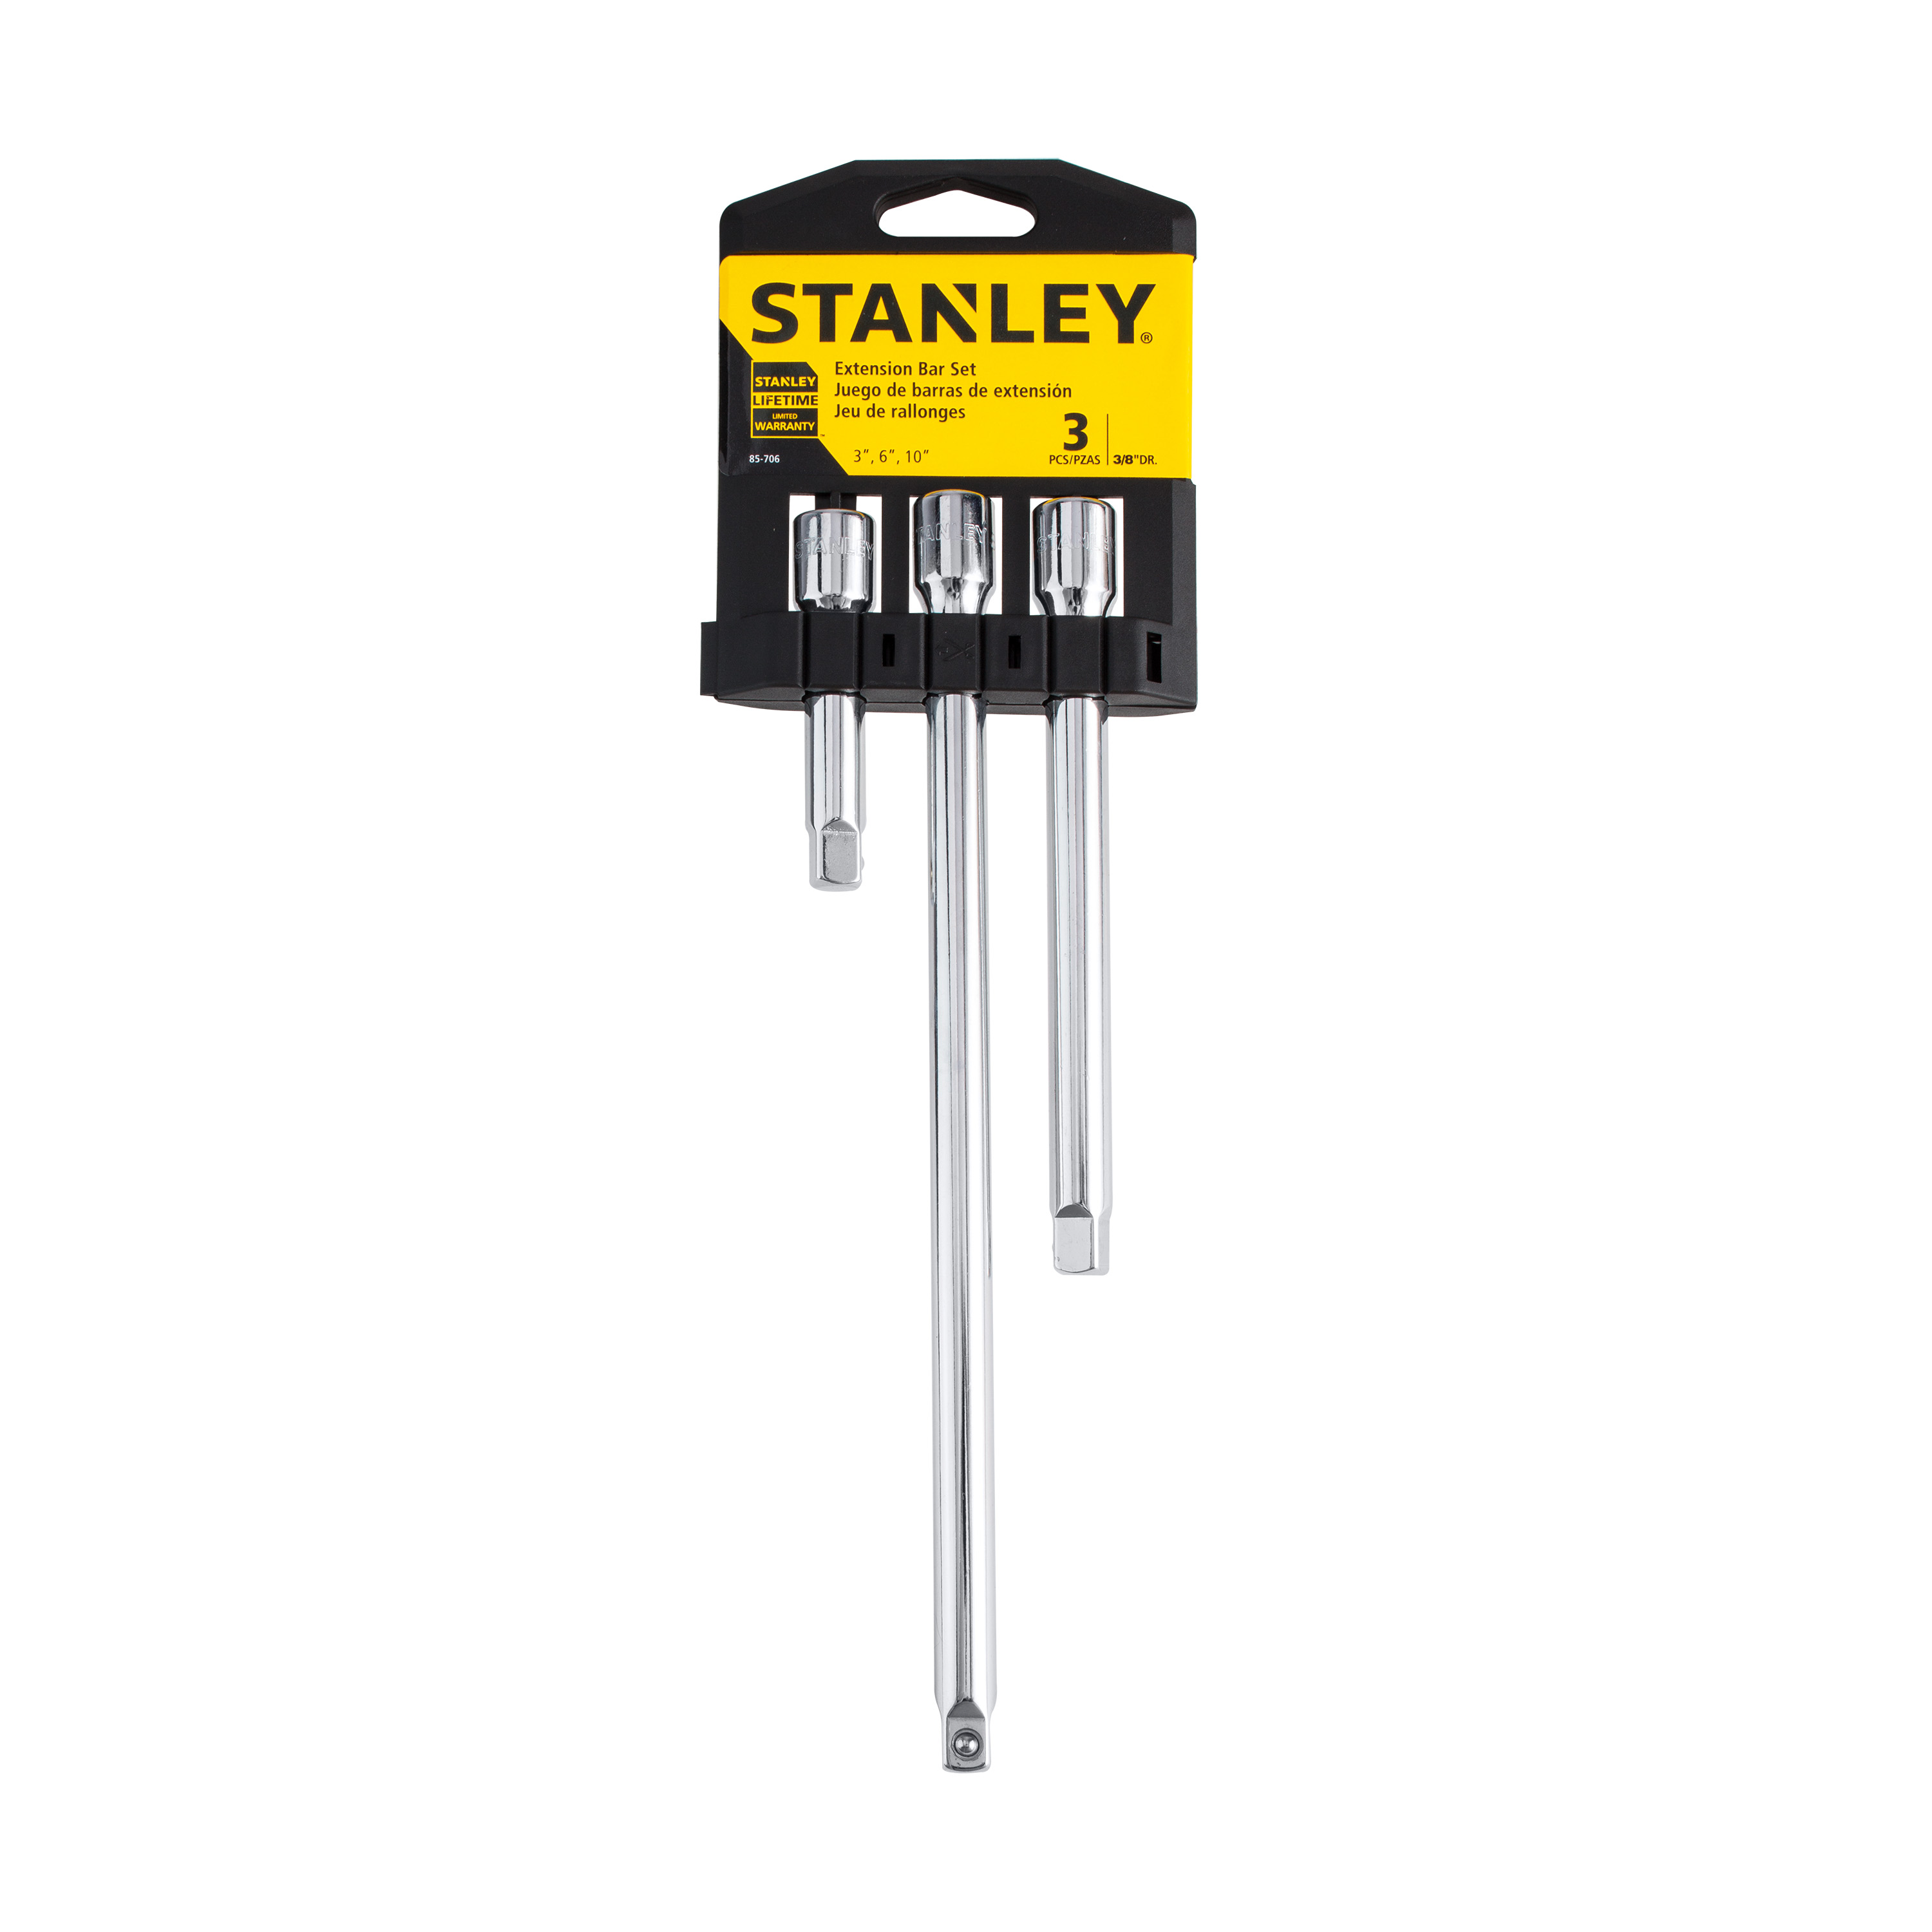 STANLEY 85-706 - 3 Piece 3/8'' Extension Bar